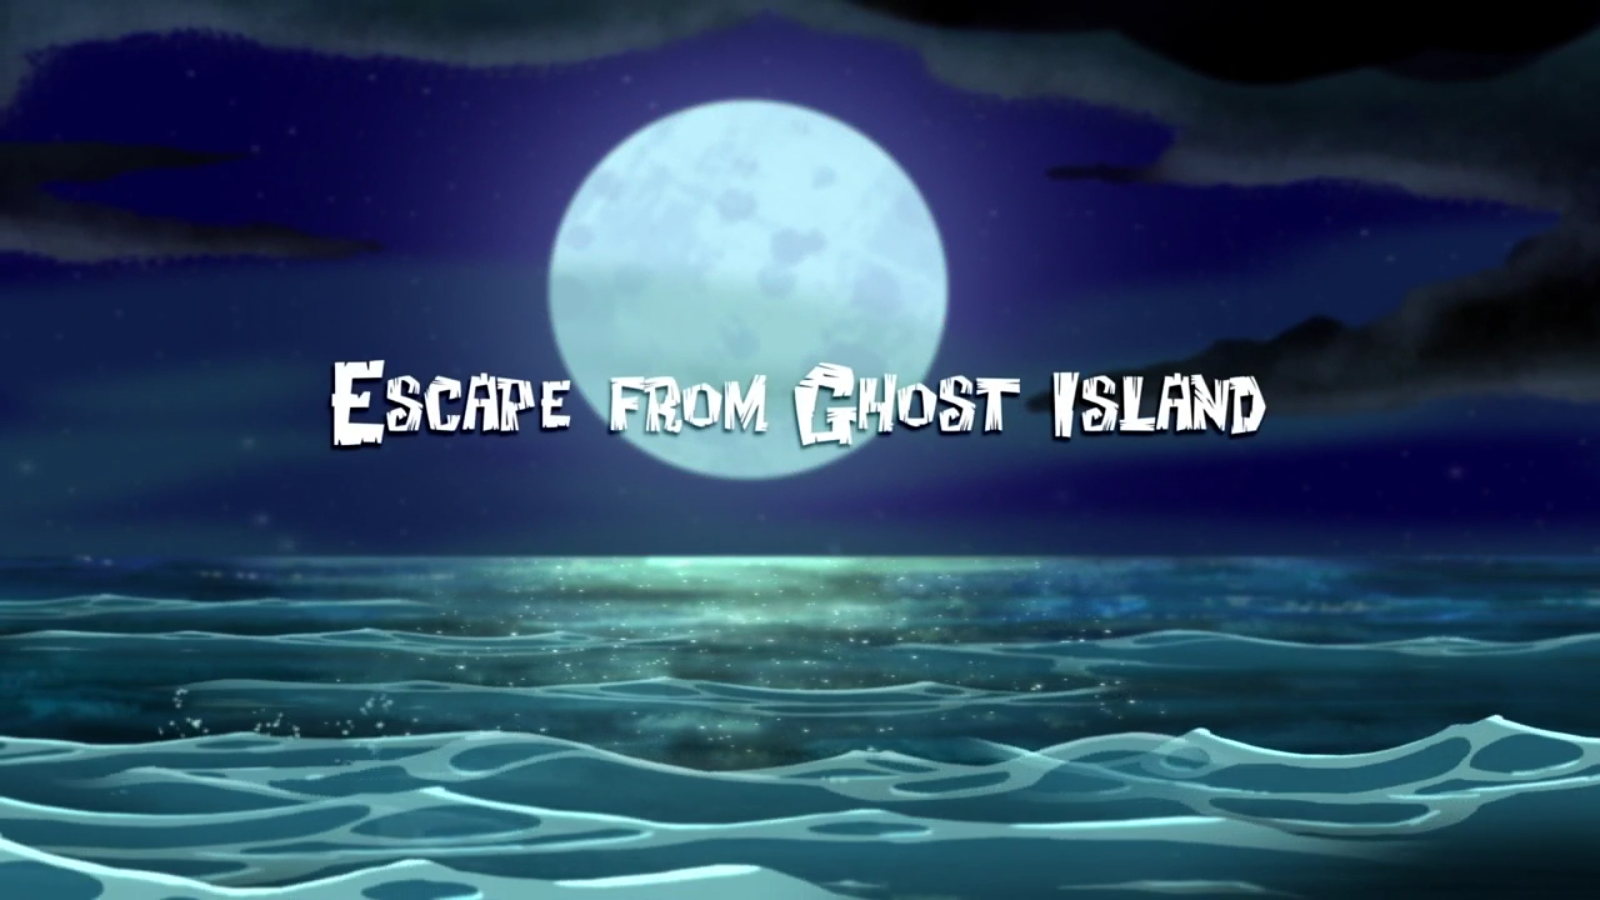 Escape from Ghost Island